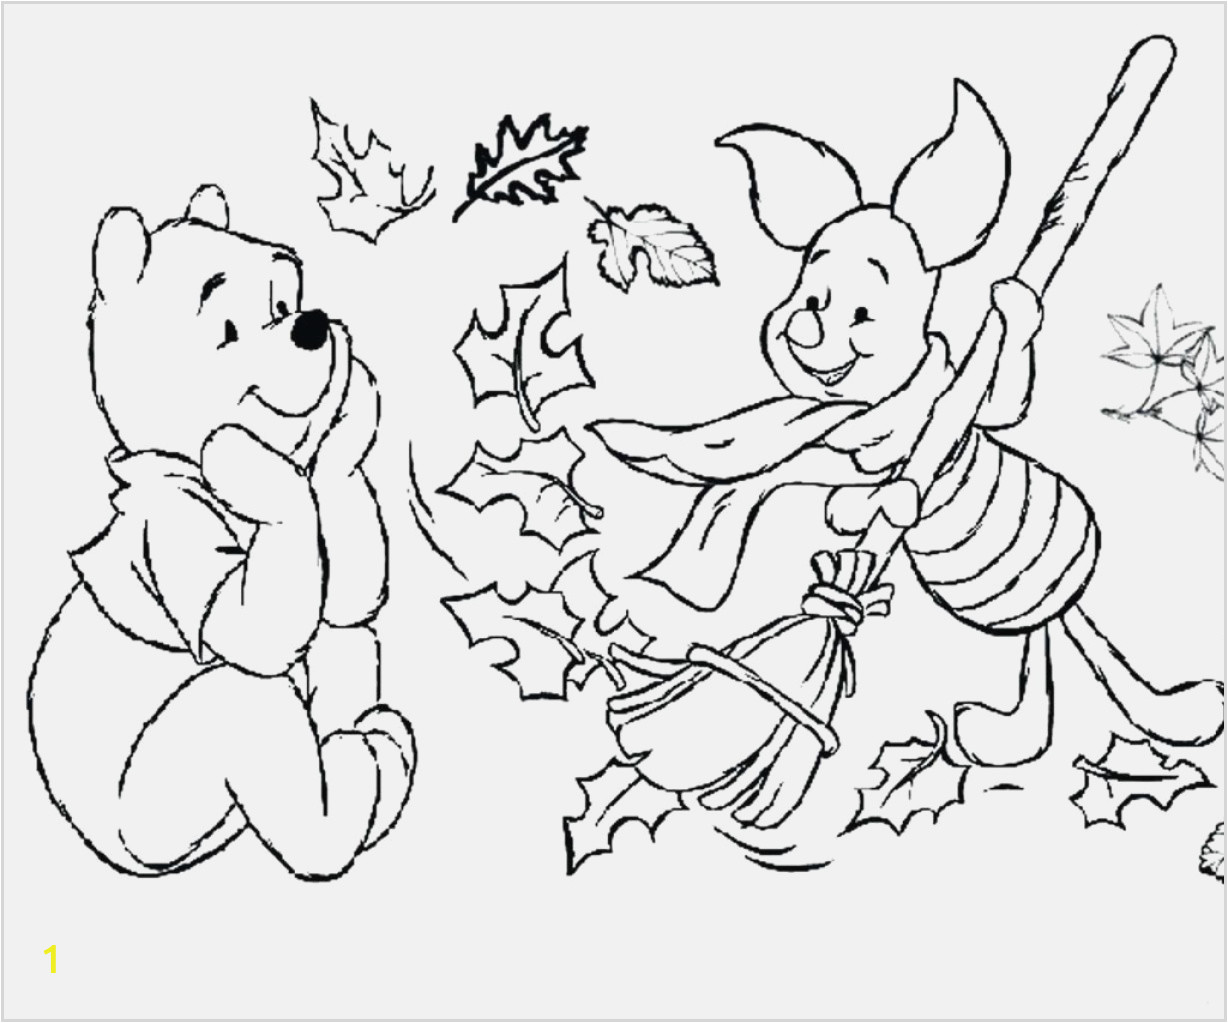 Sonic Characters Coloring Pages Coloring Pages sonic Characters to Print at Coloring Pages